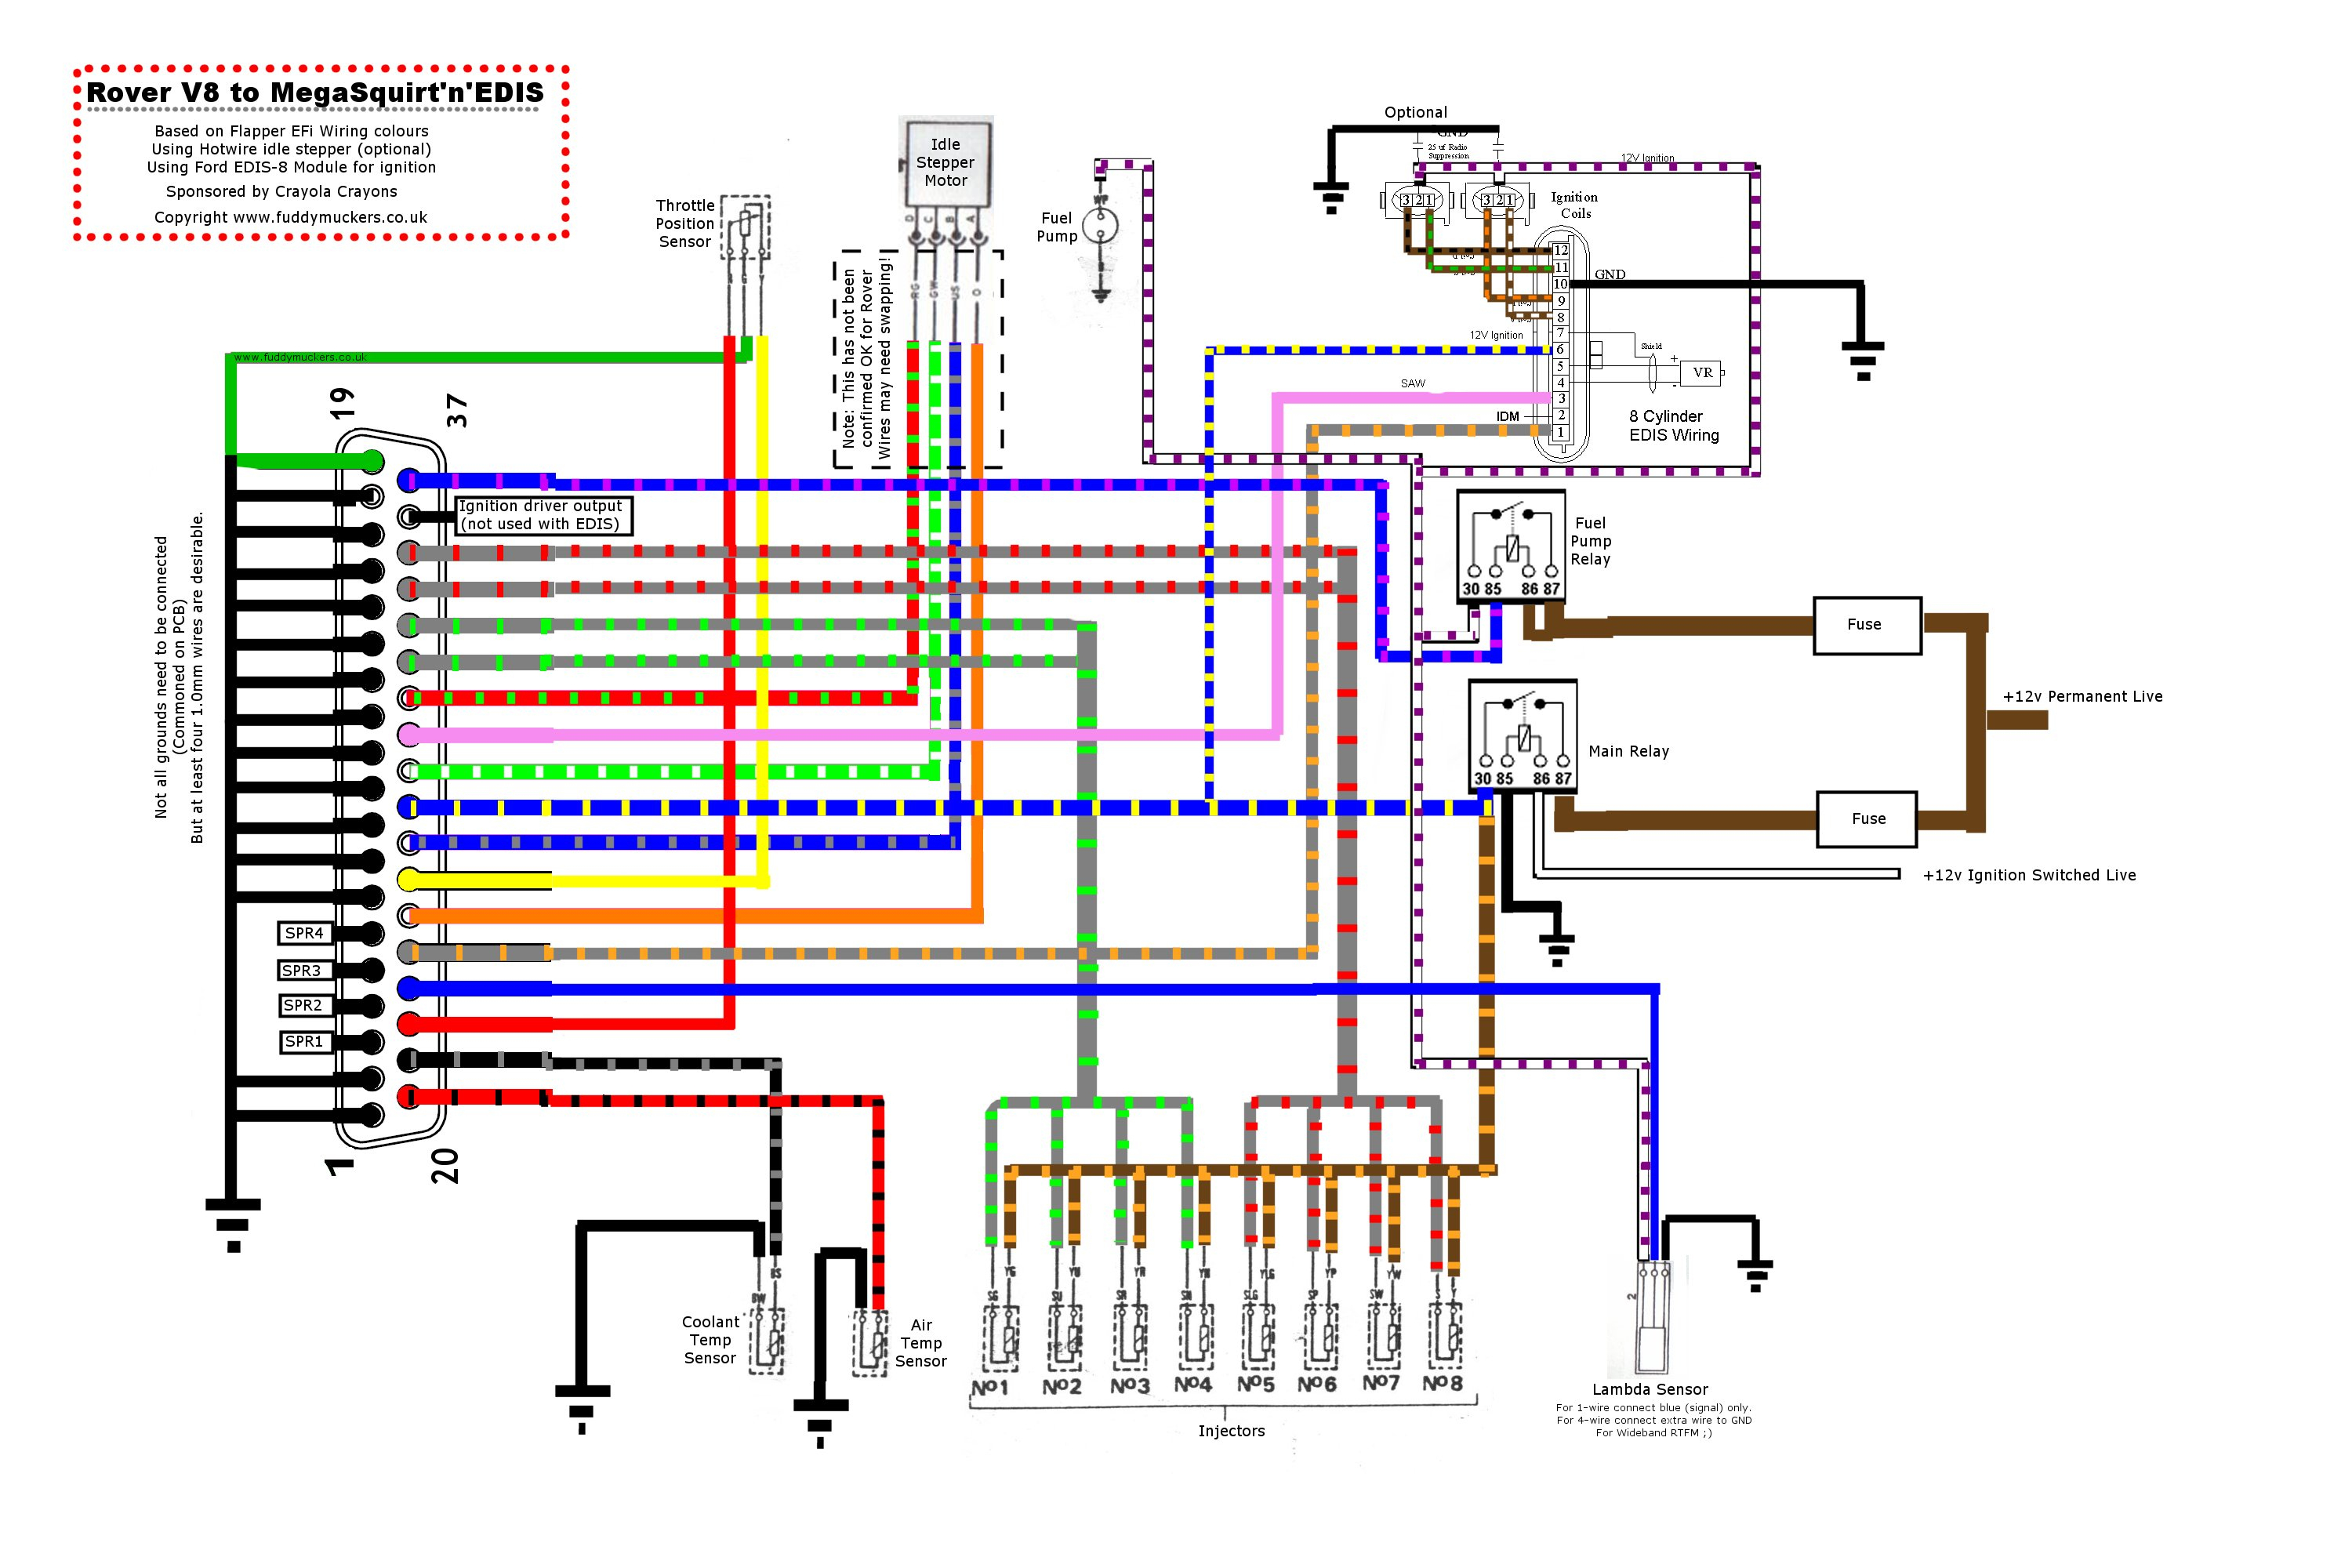 Ww Trailer Wiring Diagram | Wiring Library - Ww Trailer Wiring Diagram